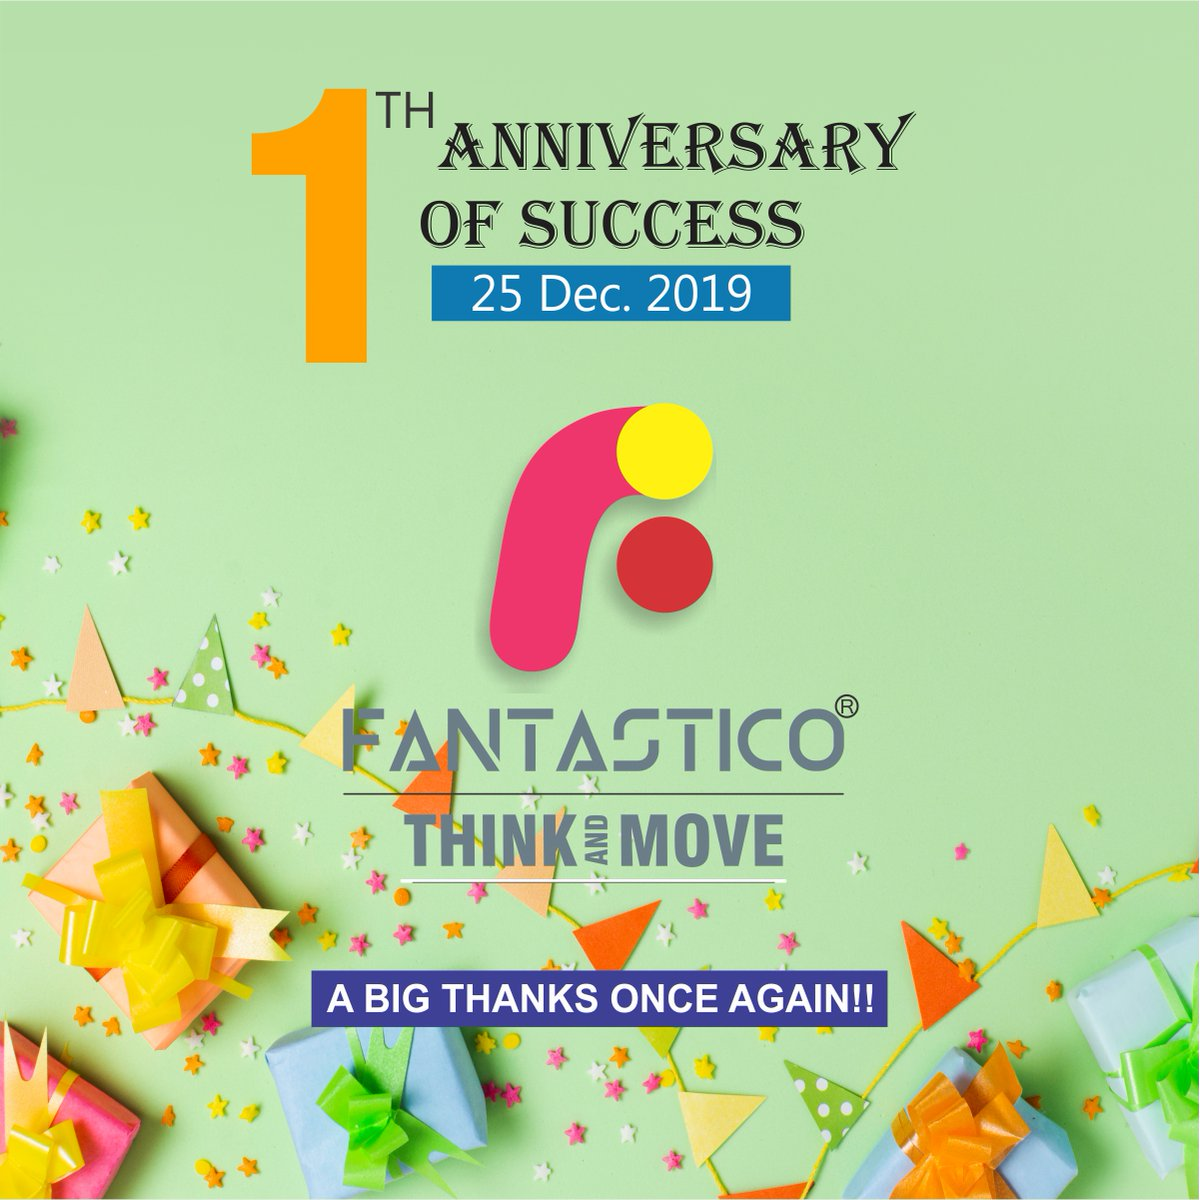 1st Anniversary of Success FantasticoGreat Brand. Smart Prices.#Fantastico #Shoes #designs #Brand #Janmashtami #FantasticoShoes #Handcrafted #shoes #MenShoes #MenFootwear #MenFormalShoes #MenFormal #MenDressShoes #FormalShoes #BusinessShoes #OfficialShoes #PartyShoes #India